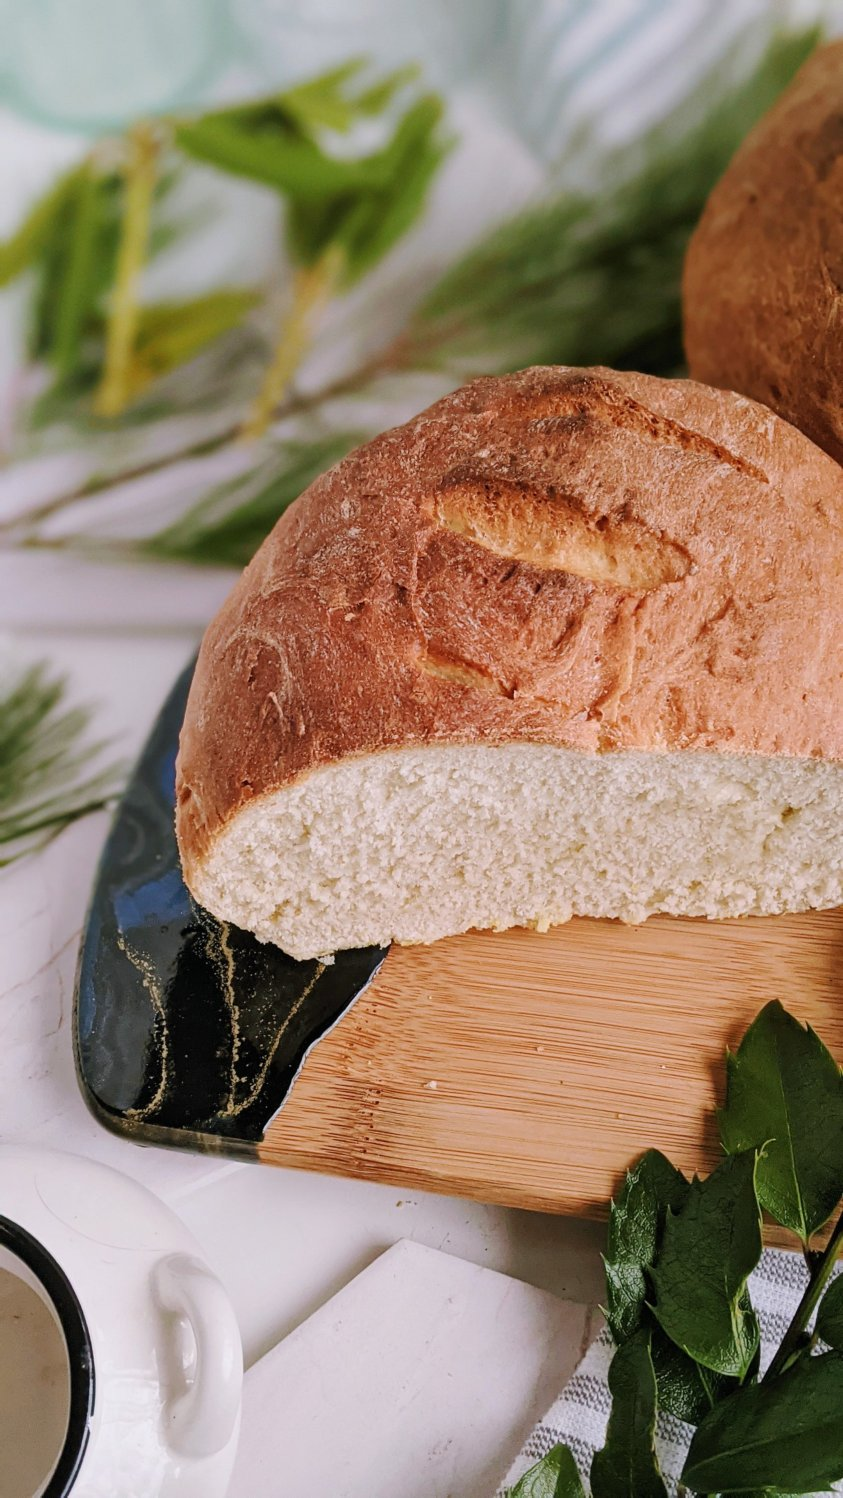 easy vegan bread for sandwiches sliced breads toast homemade brunch bread recipes to impress your guests family and friends, kids will love, basic vegan white bread recipe